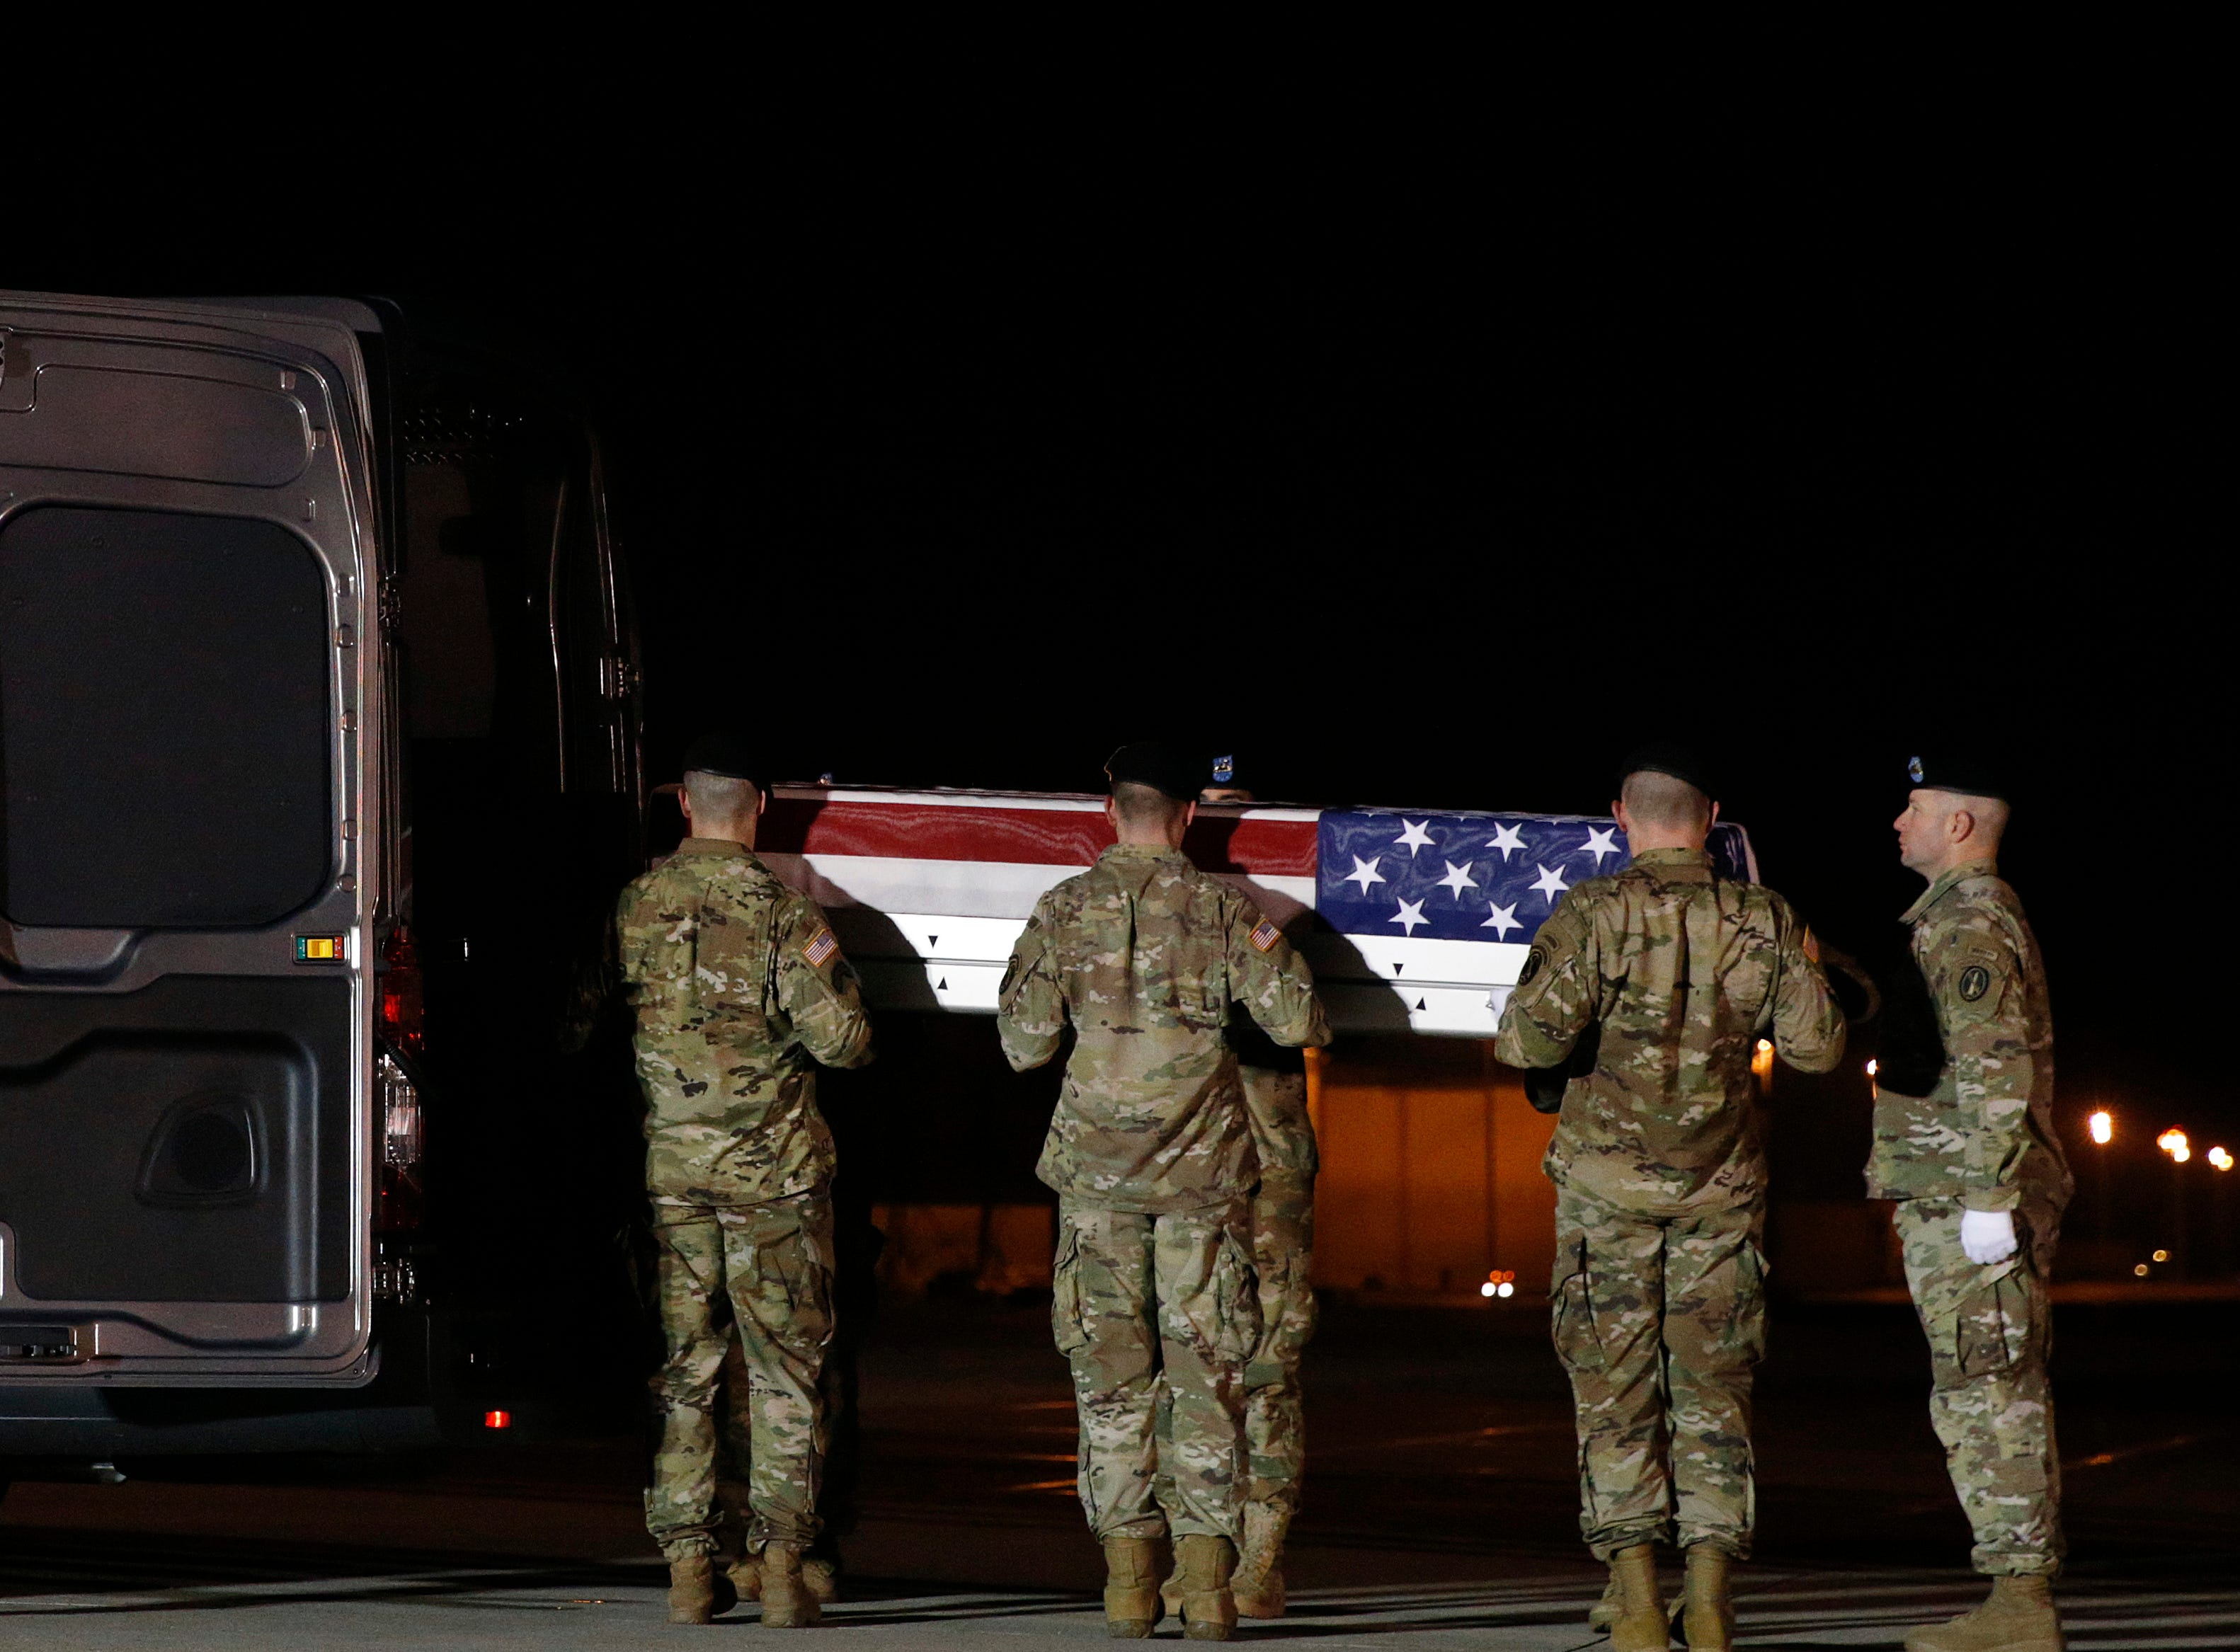 A U.S. Army carry team prepares to place a transfer case containing the remains of Capt. Andrew P. Ross into a vehicle, Friday, Nov. 30, 2018, at Dover Air Force Base, Del. According to the Department of Defense, Ross, 29, of Lexington, Va., was killed Nov. 27, 2018, by a roadside bomb in Andar, Ghazni Province, Afghanistan.